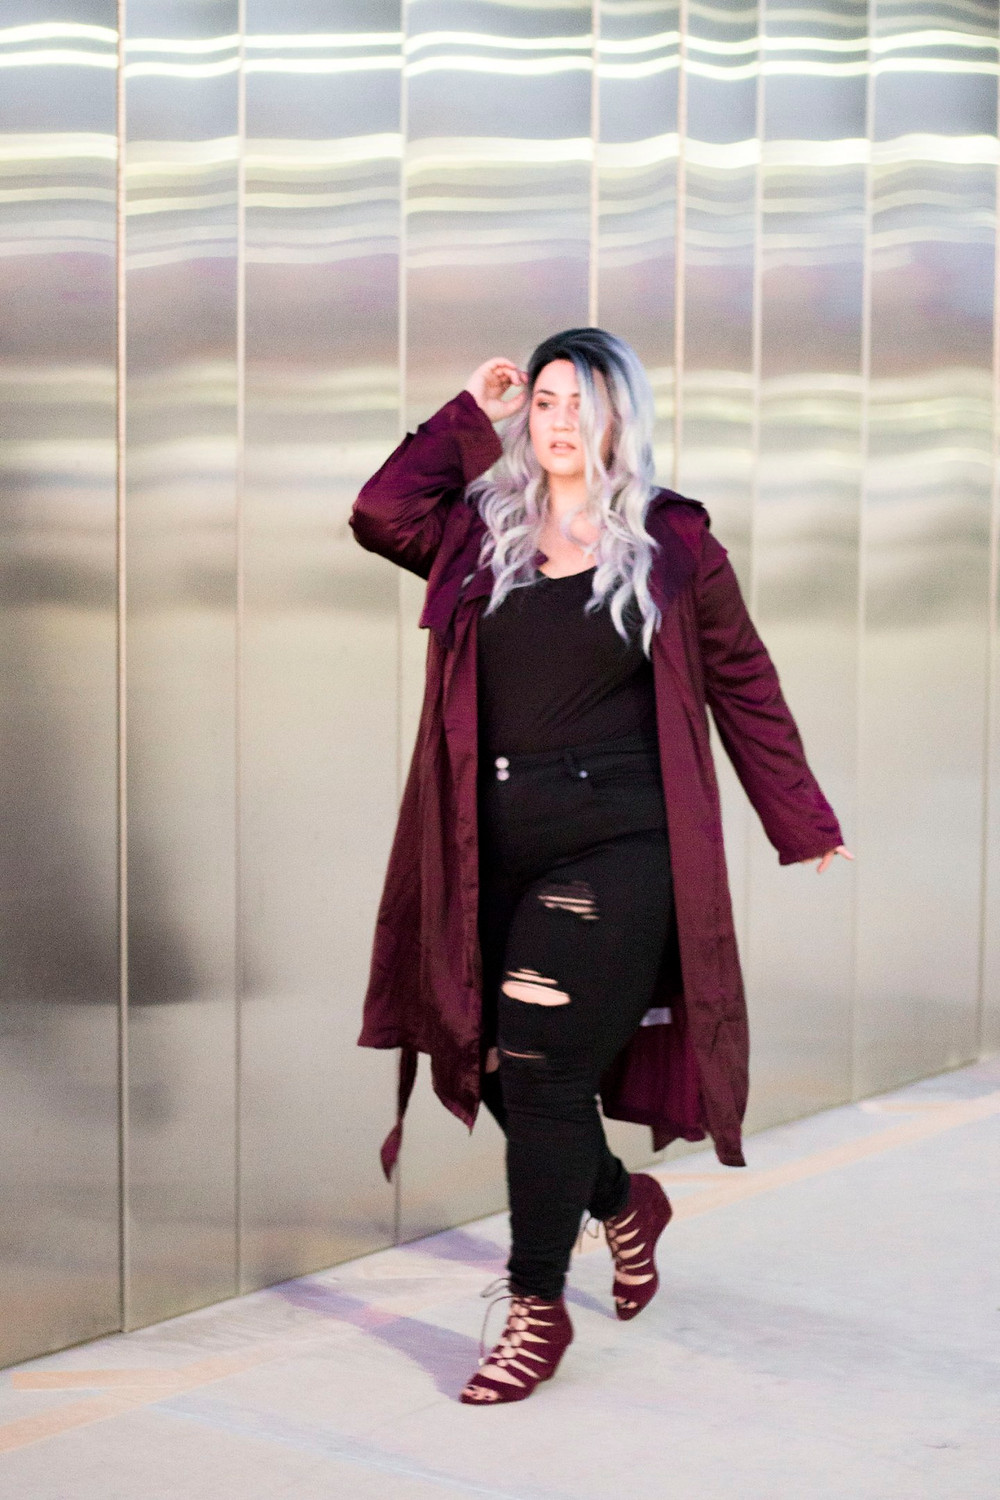 plus size ripped jeans denim destroyed crystal coons ootd sometimes glam lookbook fashion style phoenix arizona